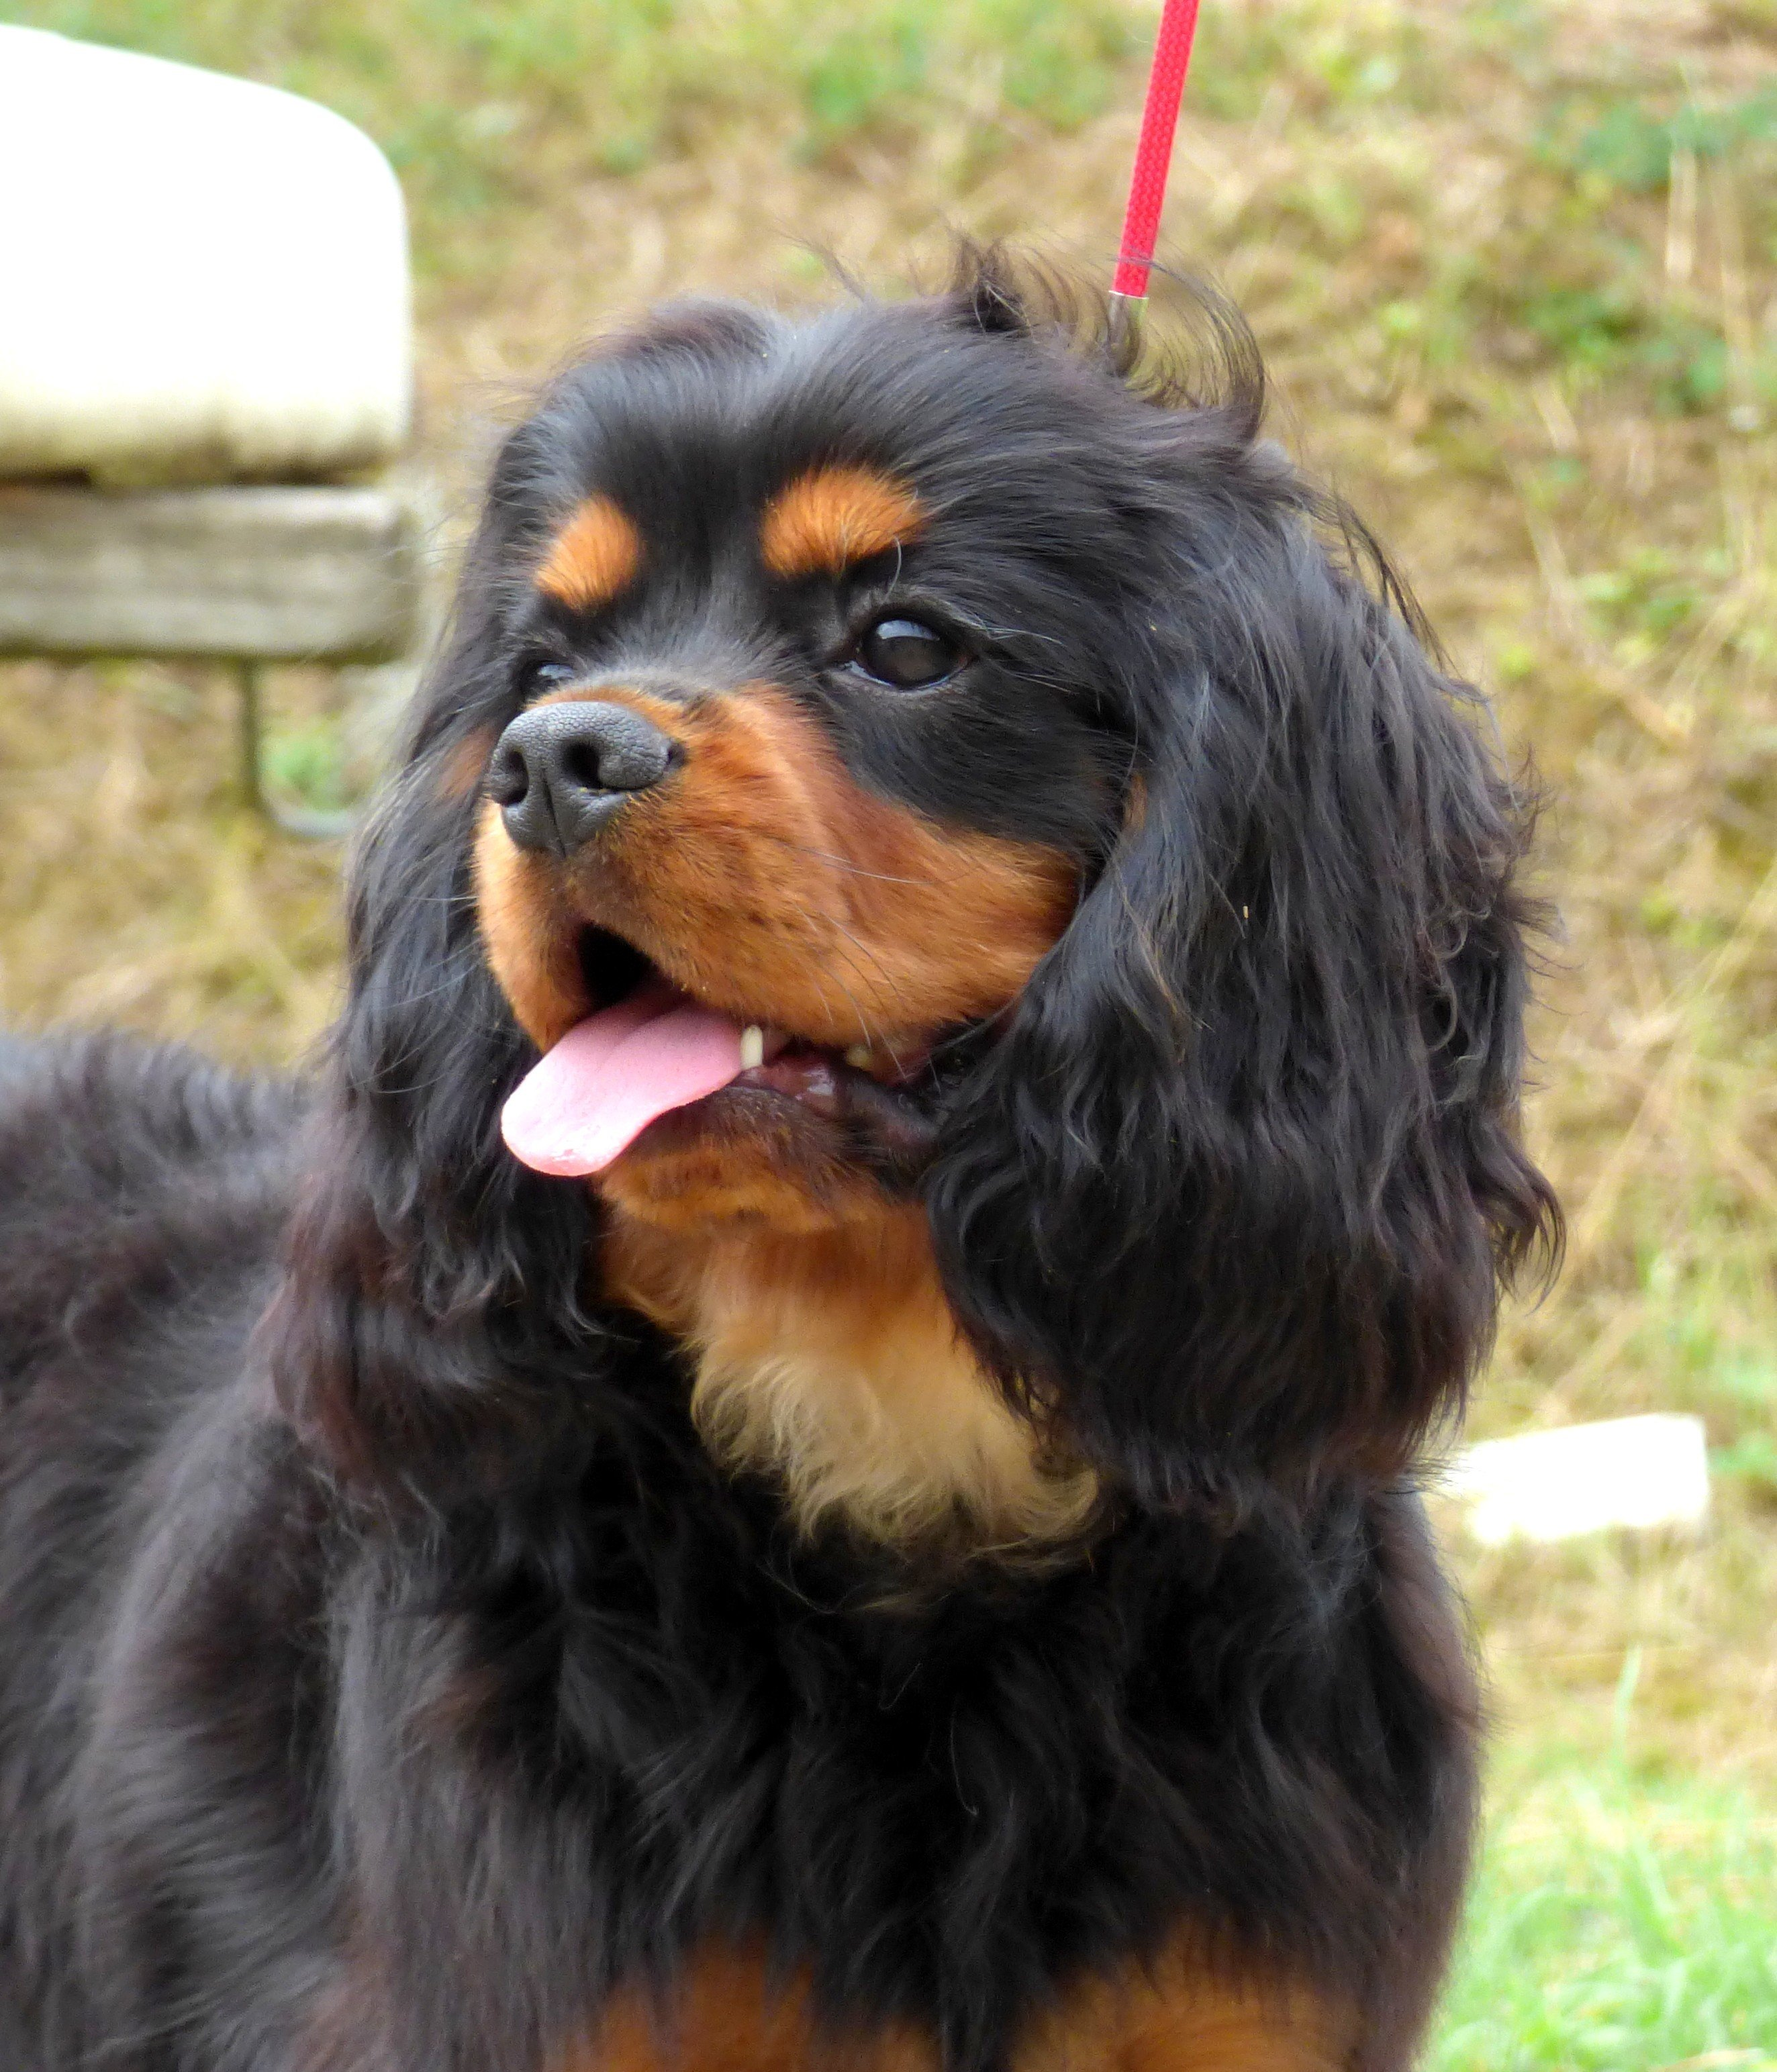 Cavalier King Charles Spaniel - royal charm protege de began My lord